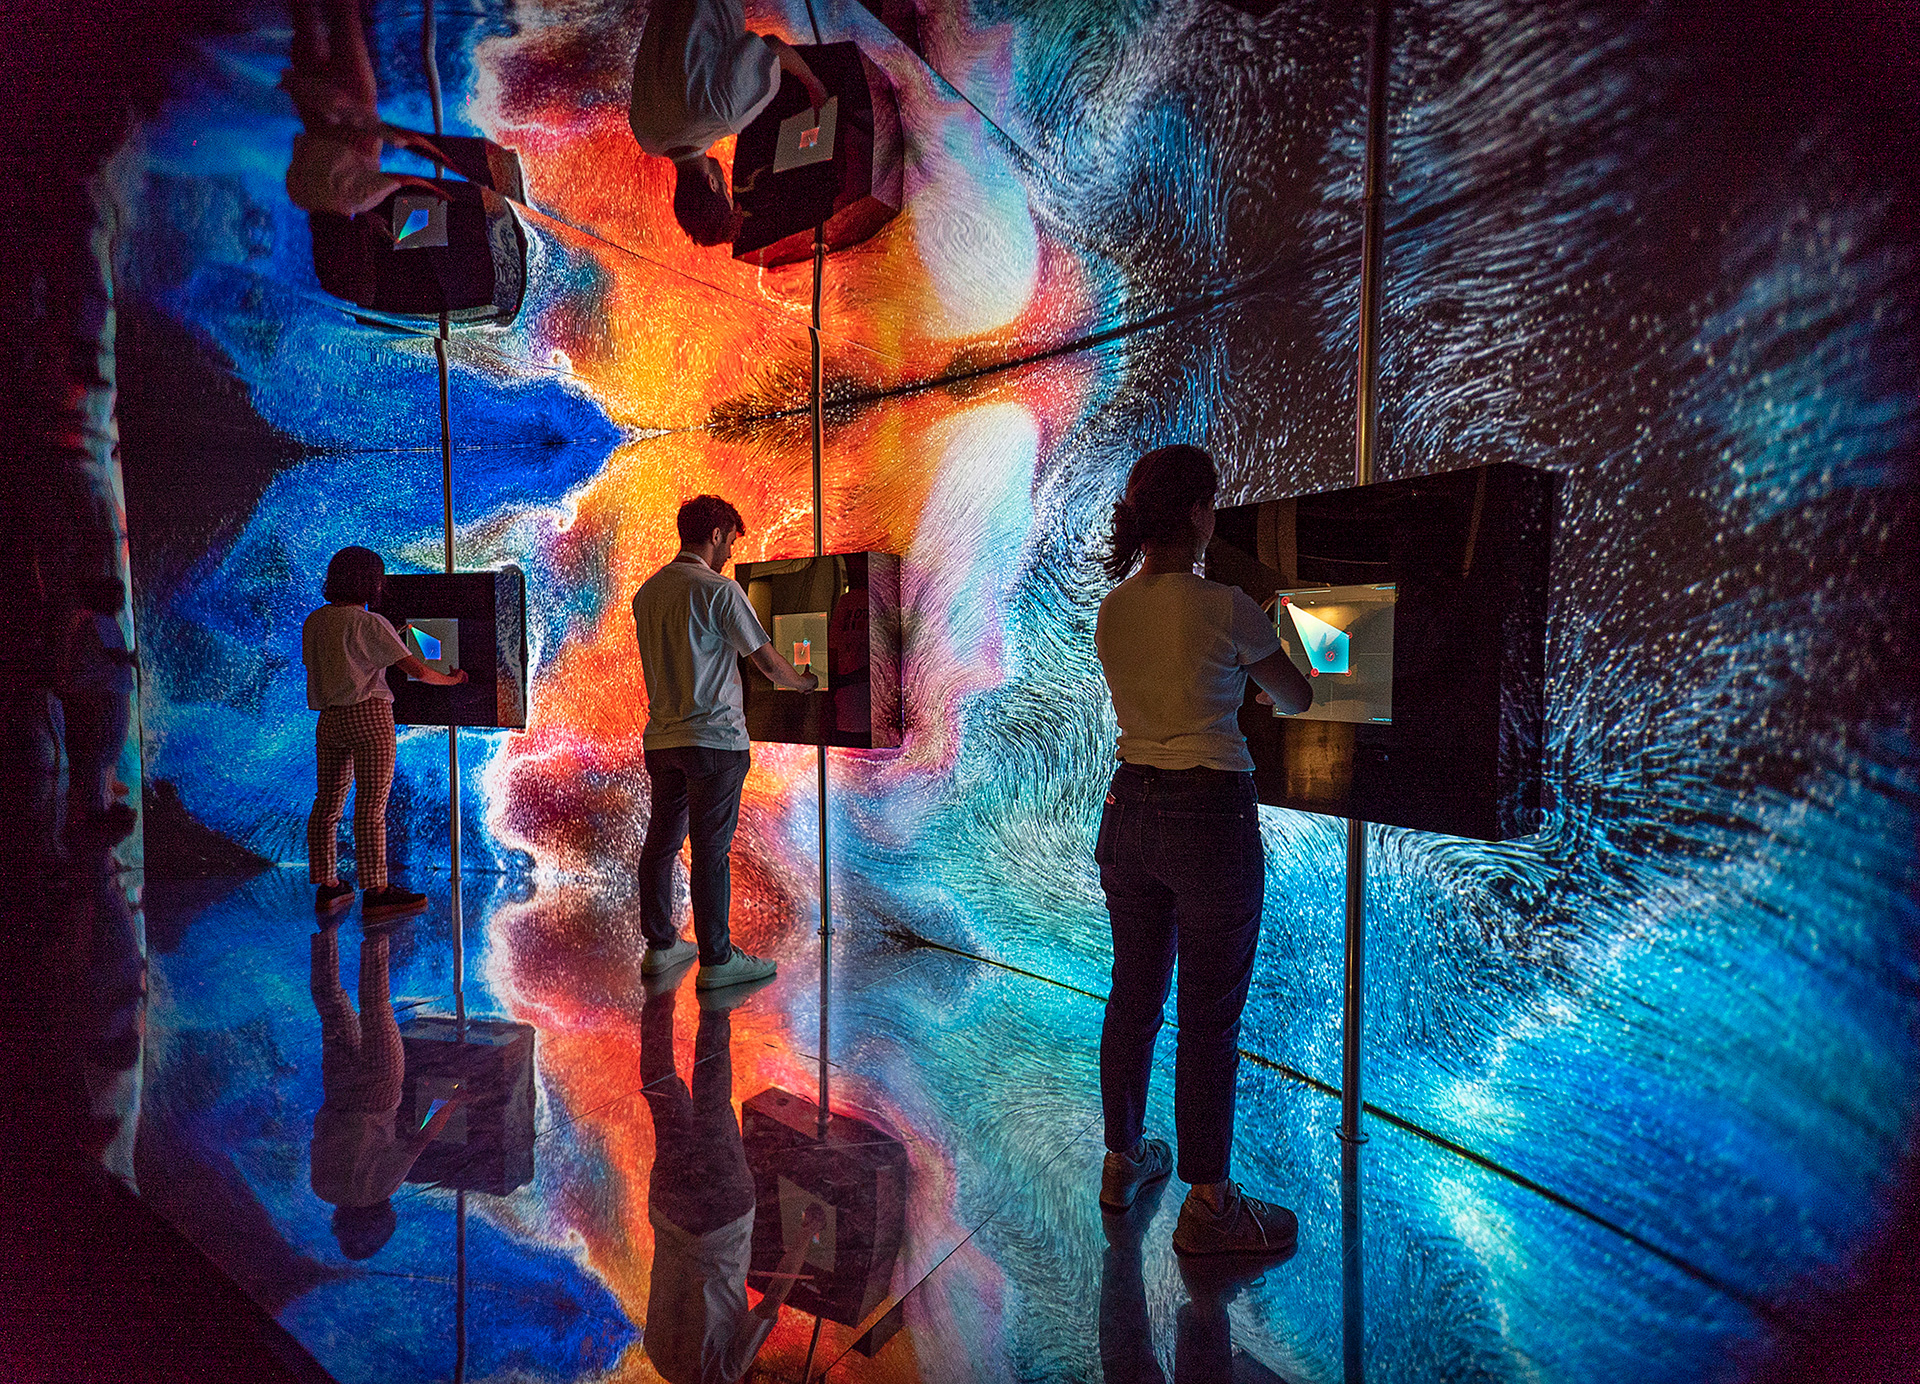 The installation uses custom software, Ableton, TouchDesigner and openFrameworks to create this interactive experience | Arkhe | Nohlab | DECOL | STIRworld